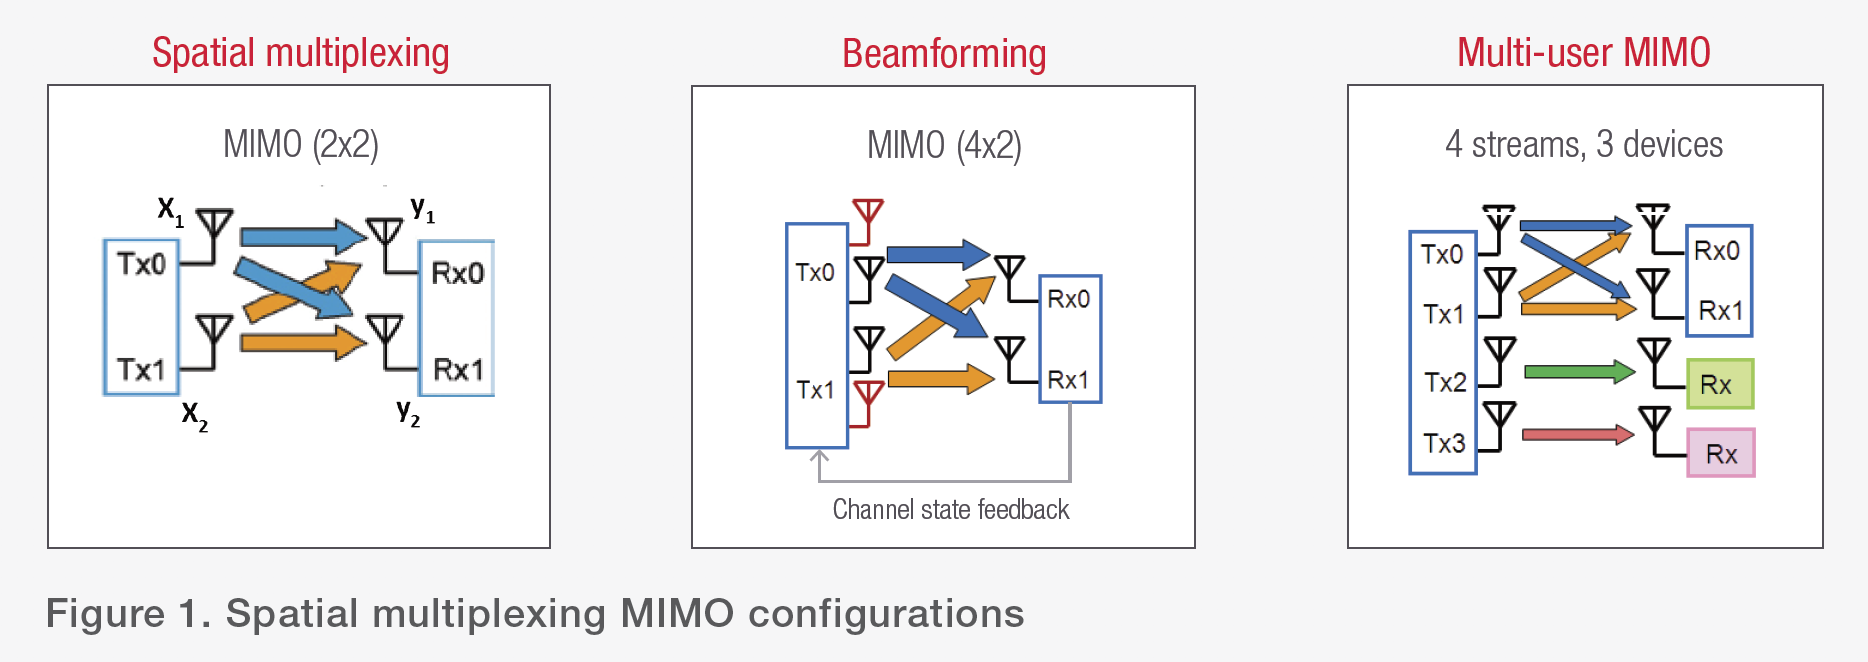 Figure 1. Spatial multiplexing MIMO configurations